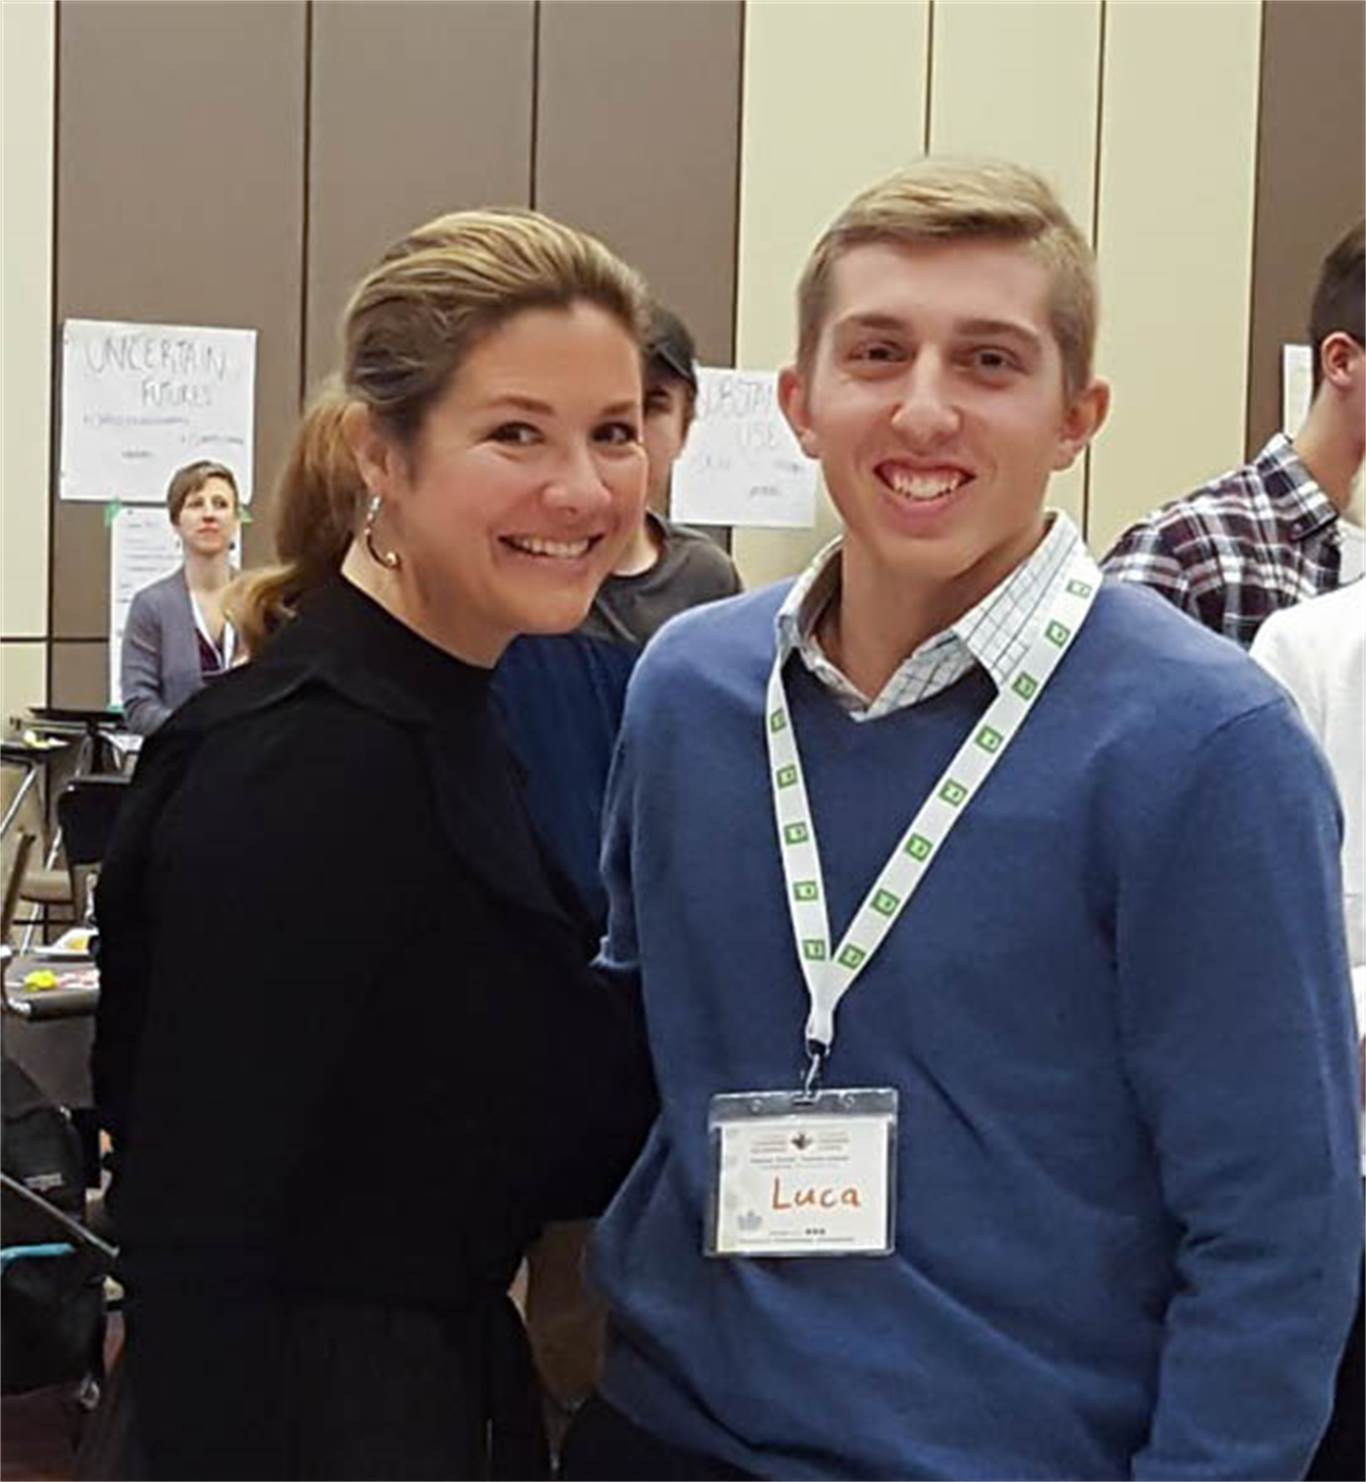 Luca Ramelli meets Sophie Gregoire Trudeau at the National Youth Summit.